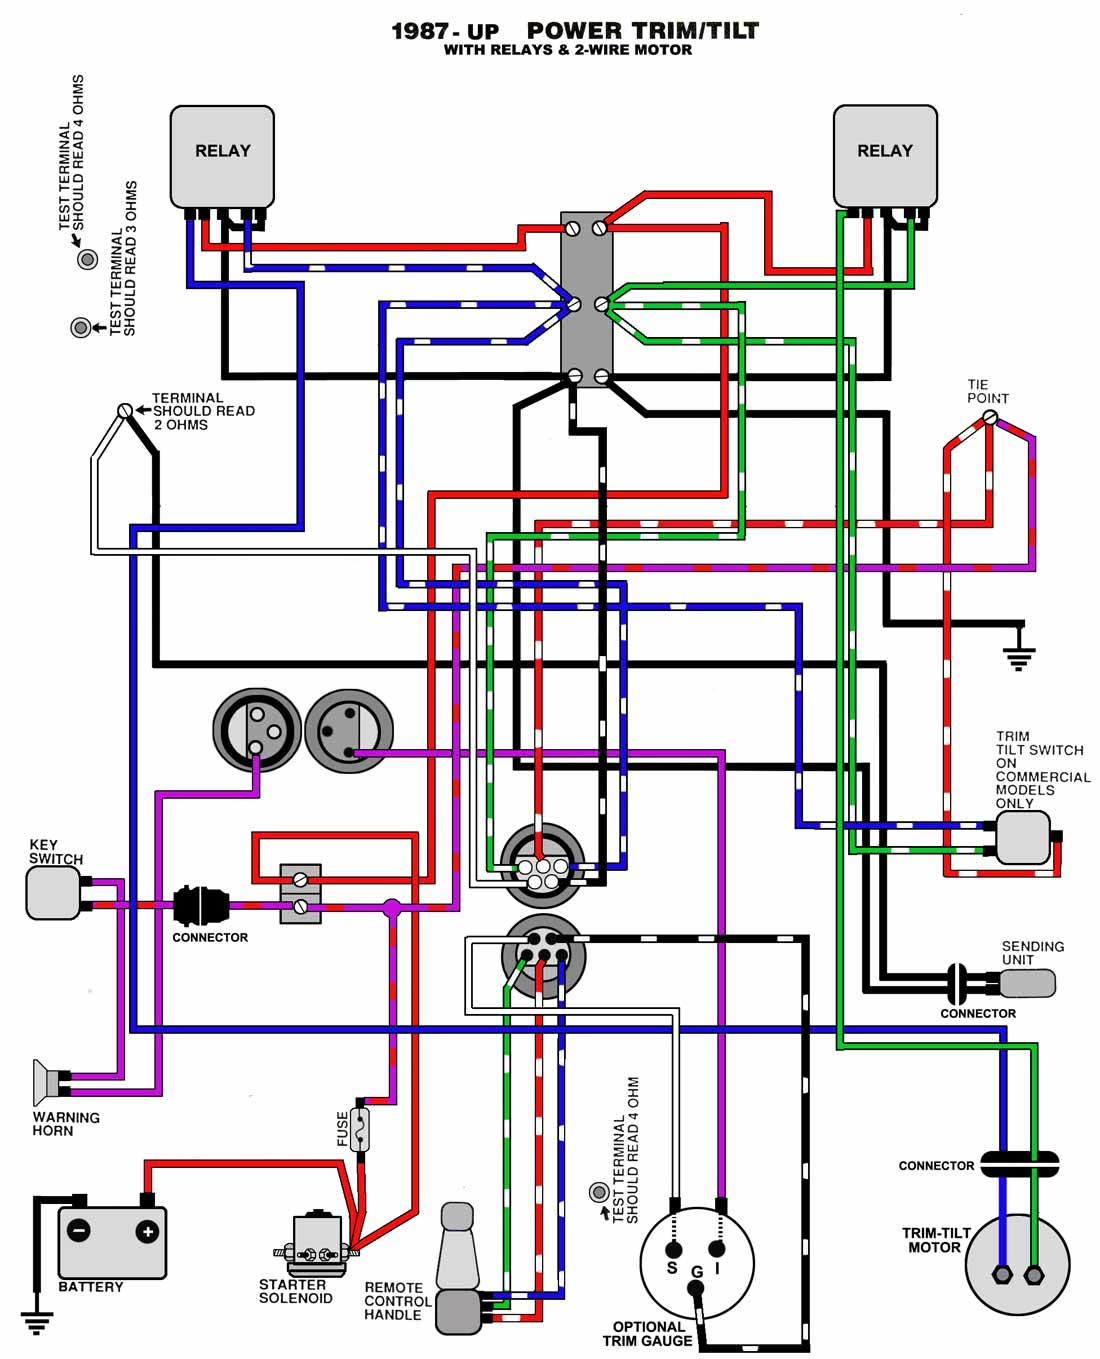 TnT_87_UP mastertech marine evinrude johnson outboard wiring diagrams 35 Evinrude Wiring Diagram at fashall.co